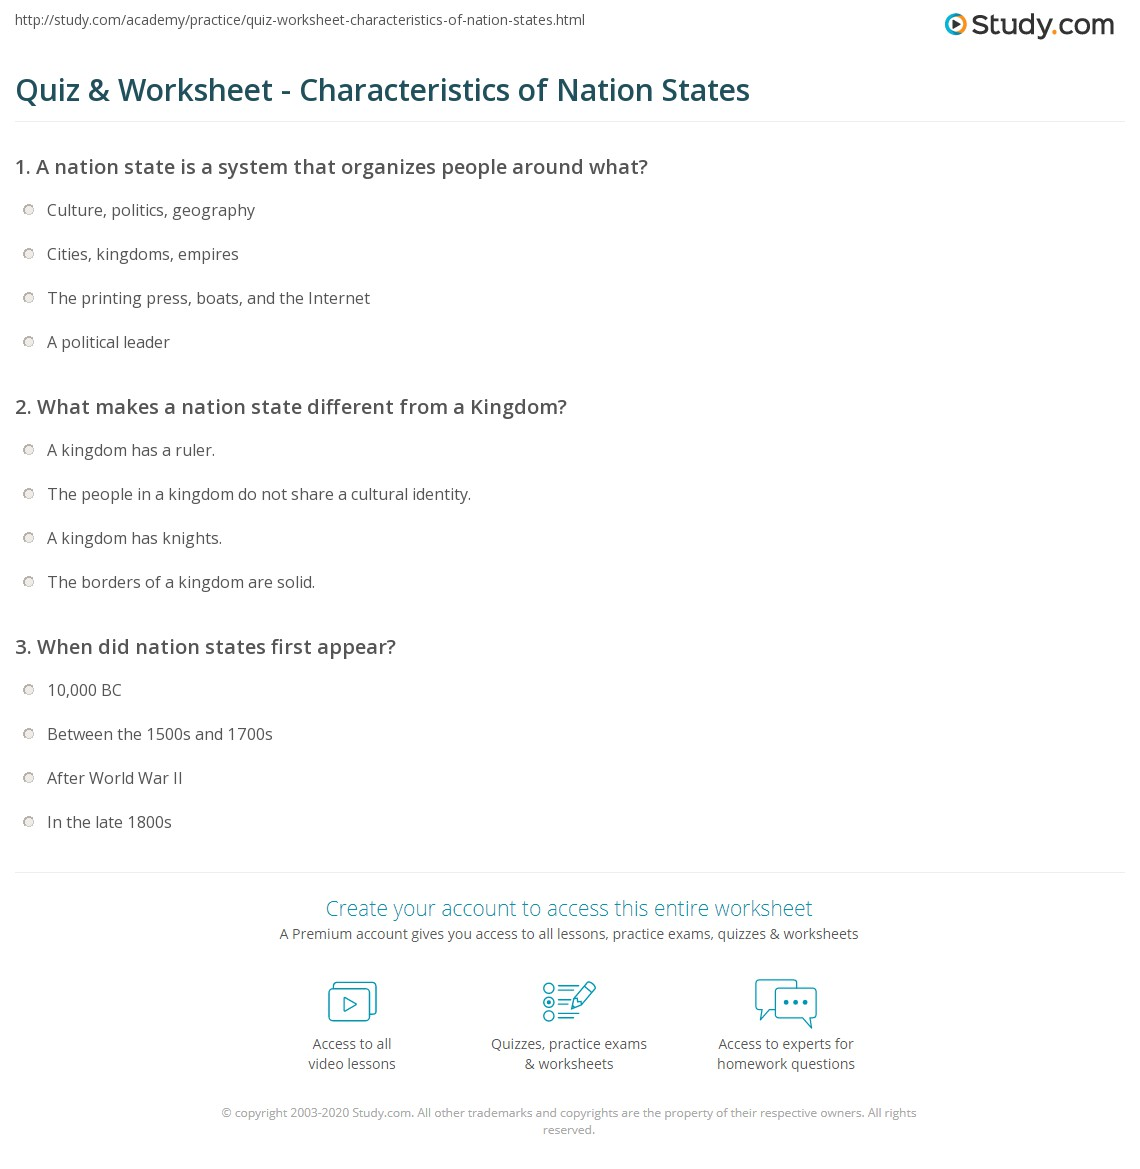 quiz & worksheet - characteristics of nation states | study